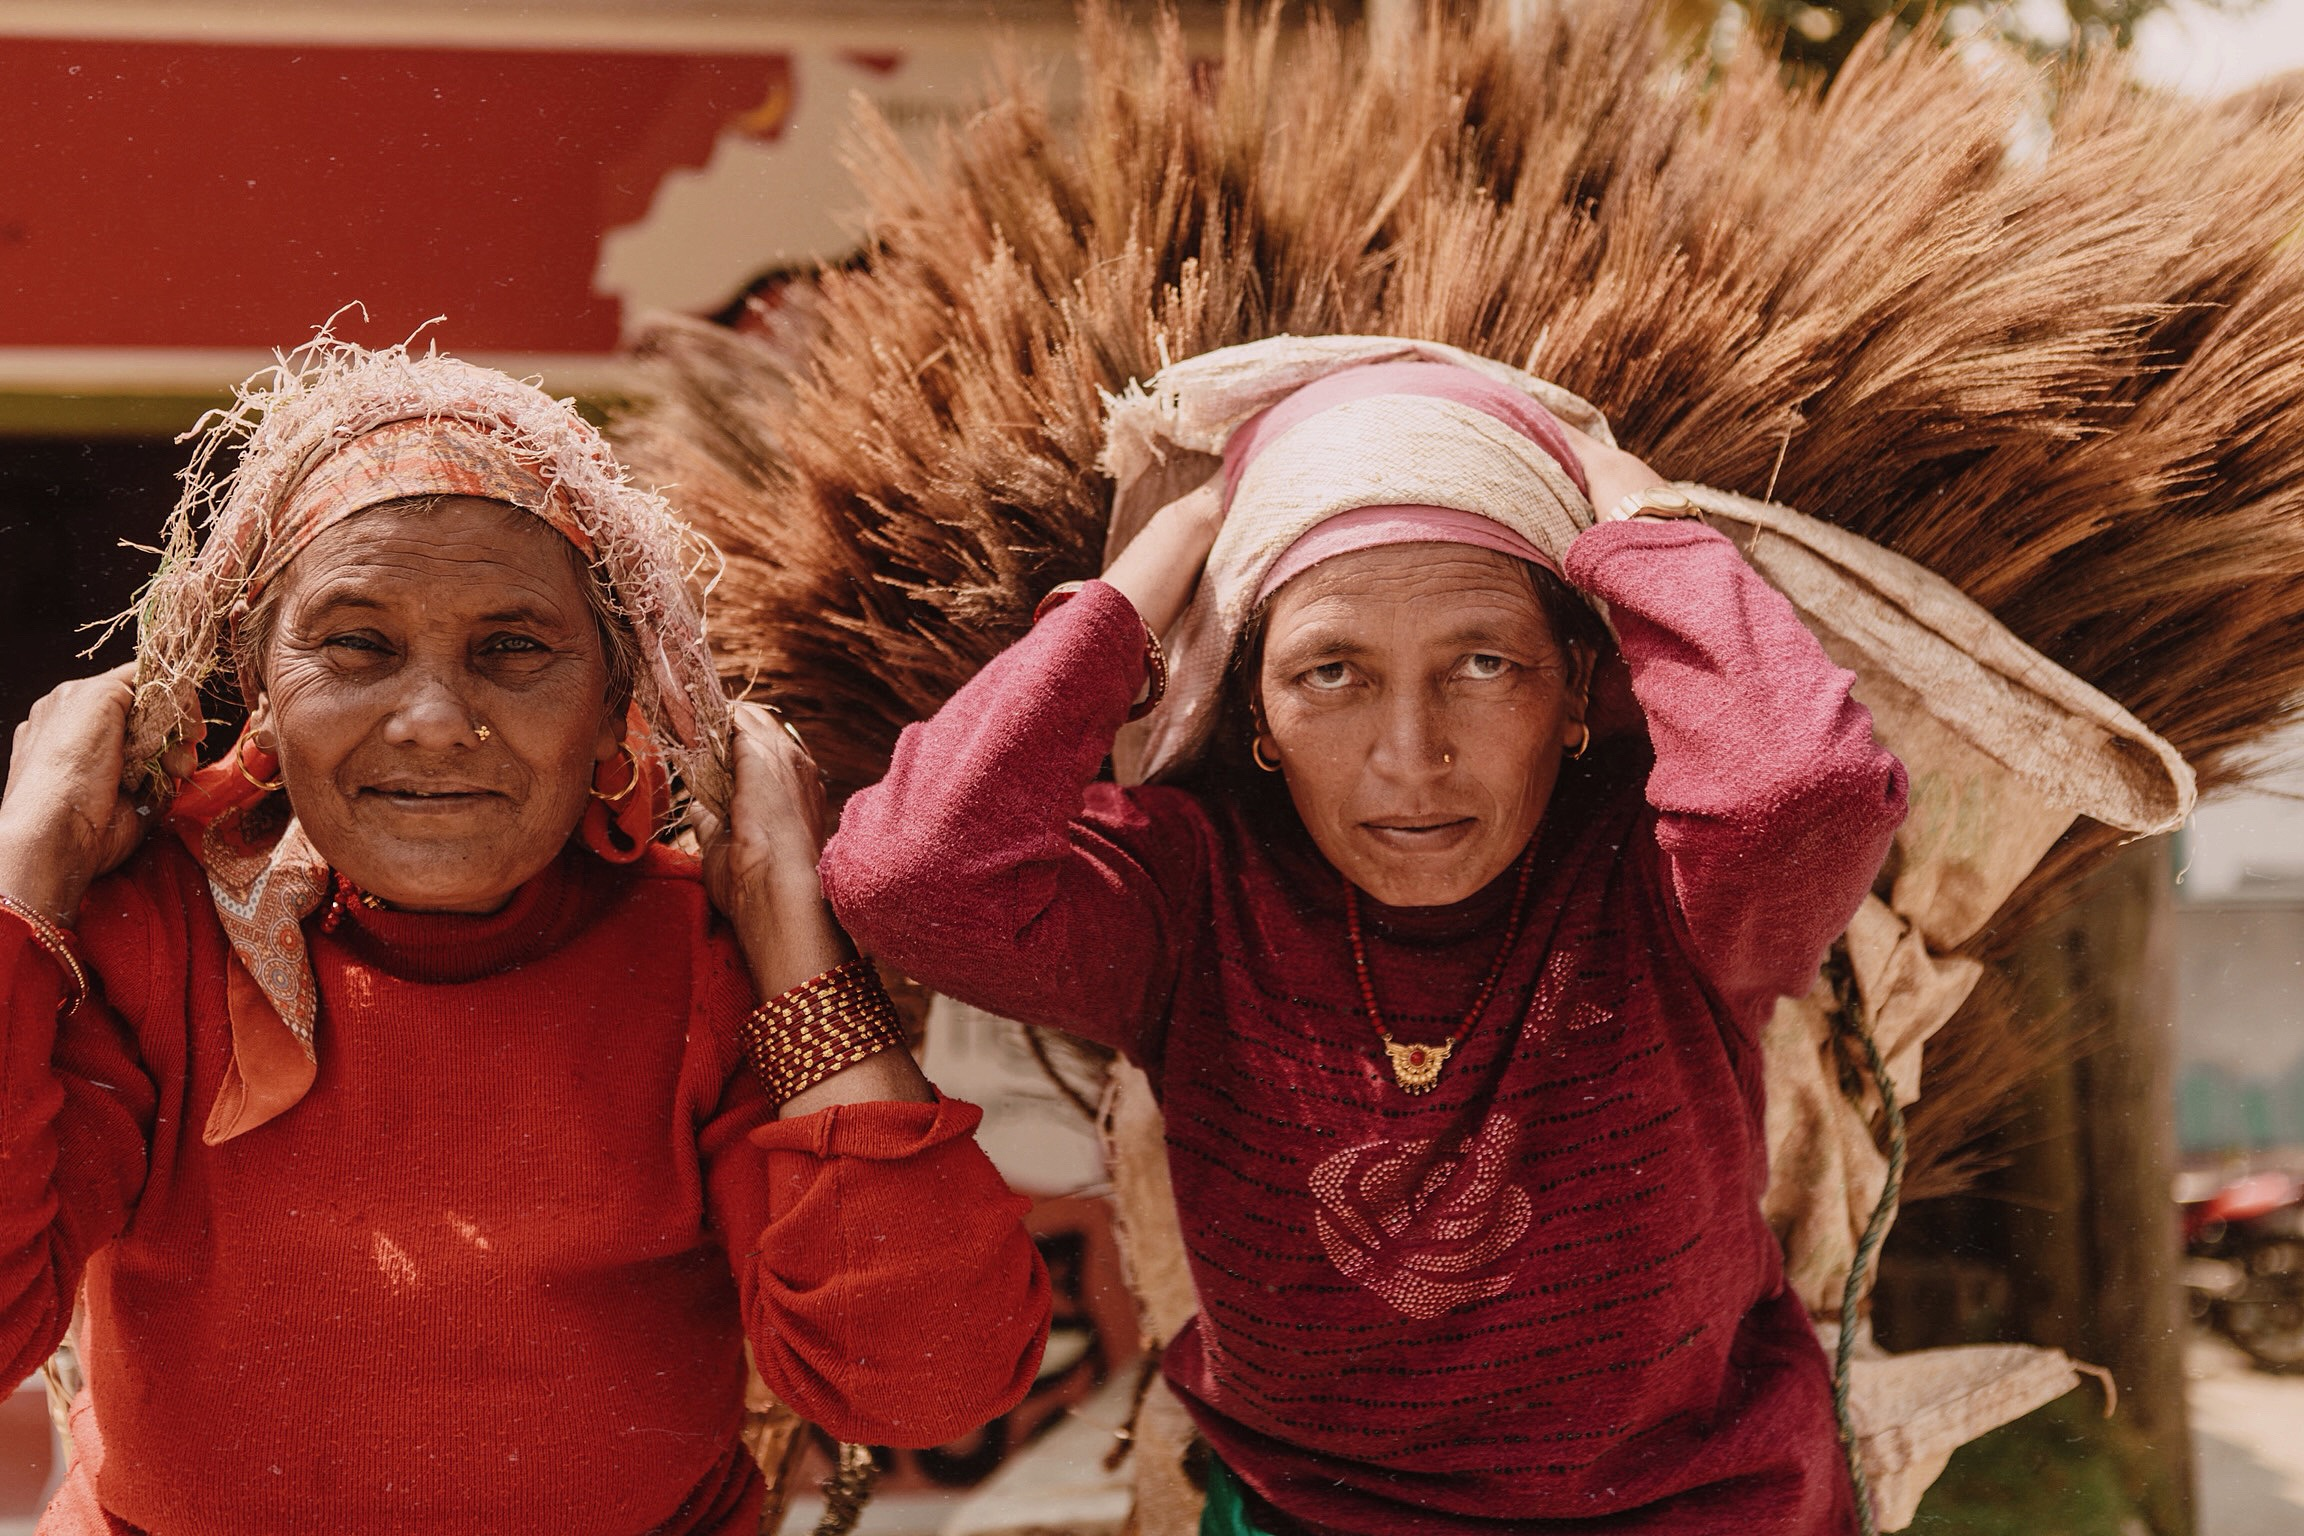 - Two women on the streets of Pokhara, Nepal transport heavy materials by wrapping baskets and bags around their heads and using the strength of their necks and backs to support the weight.